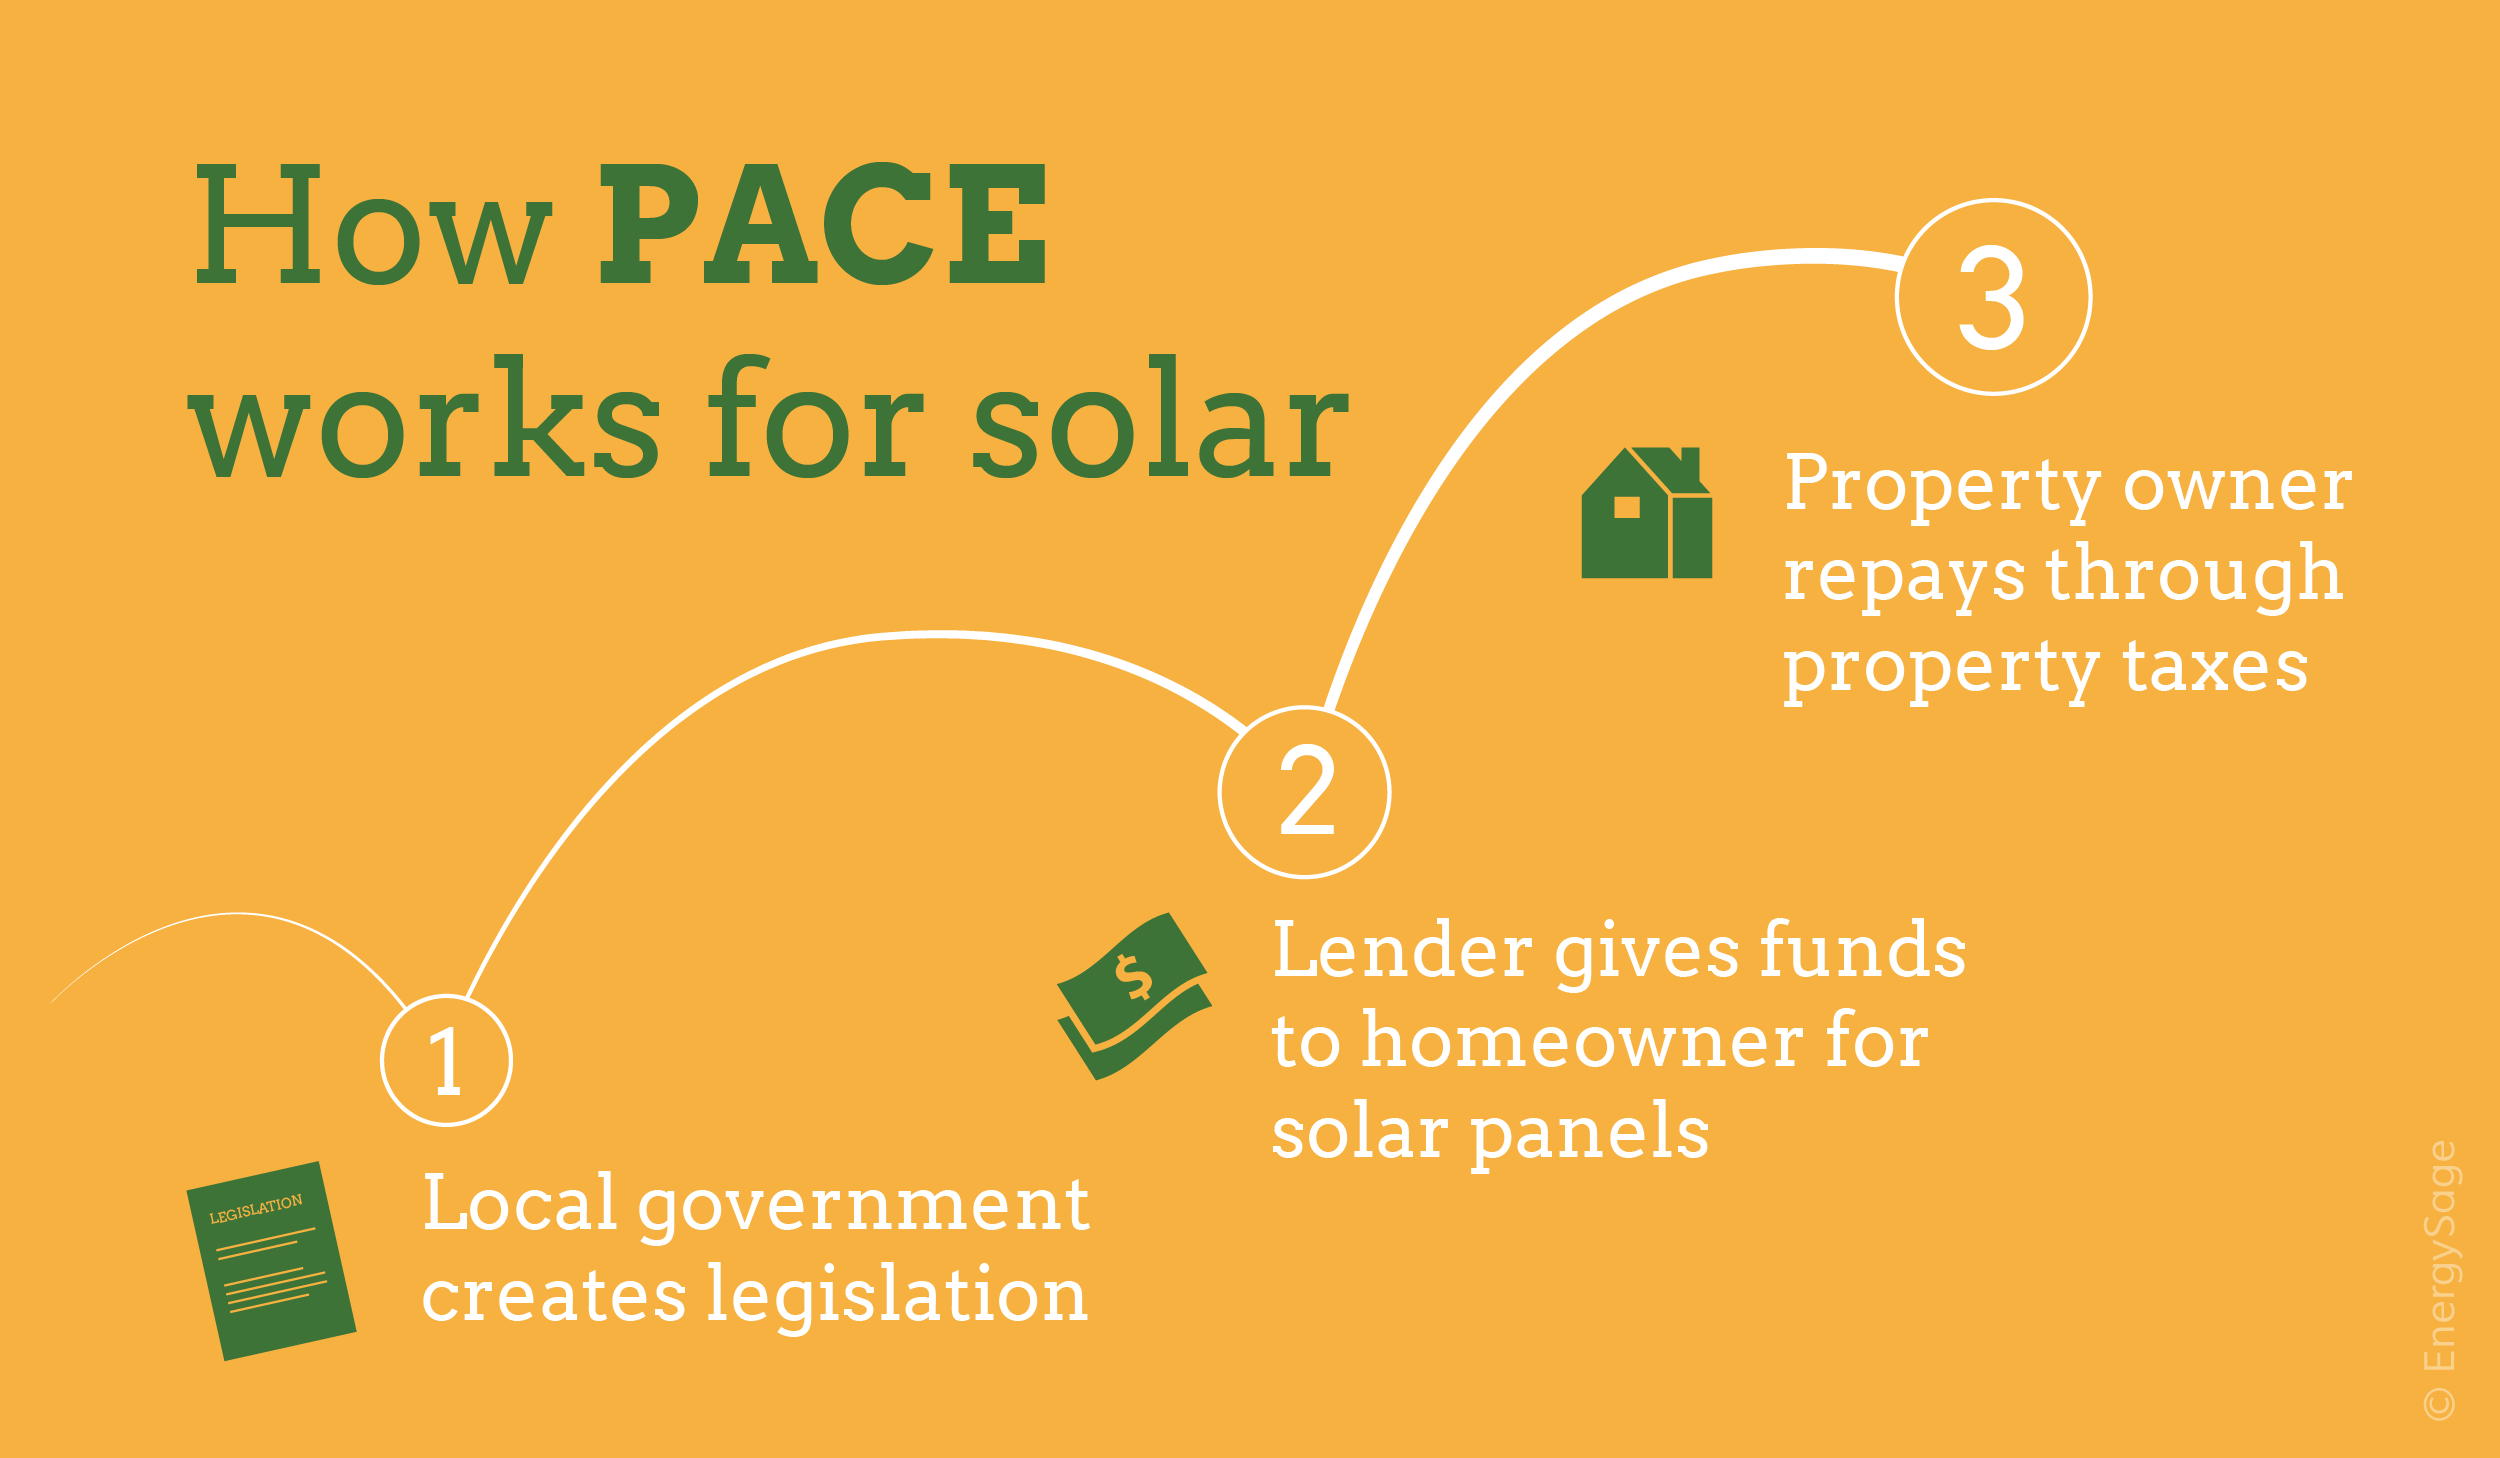 PACE financing for solar